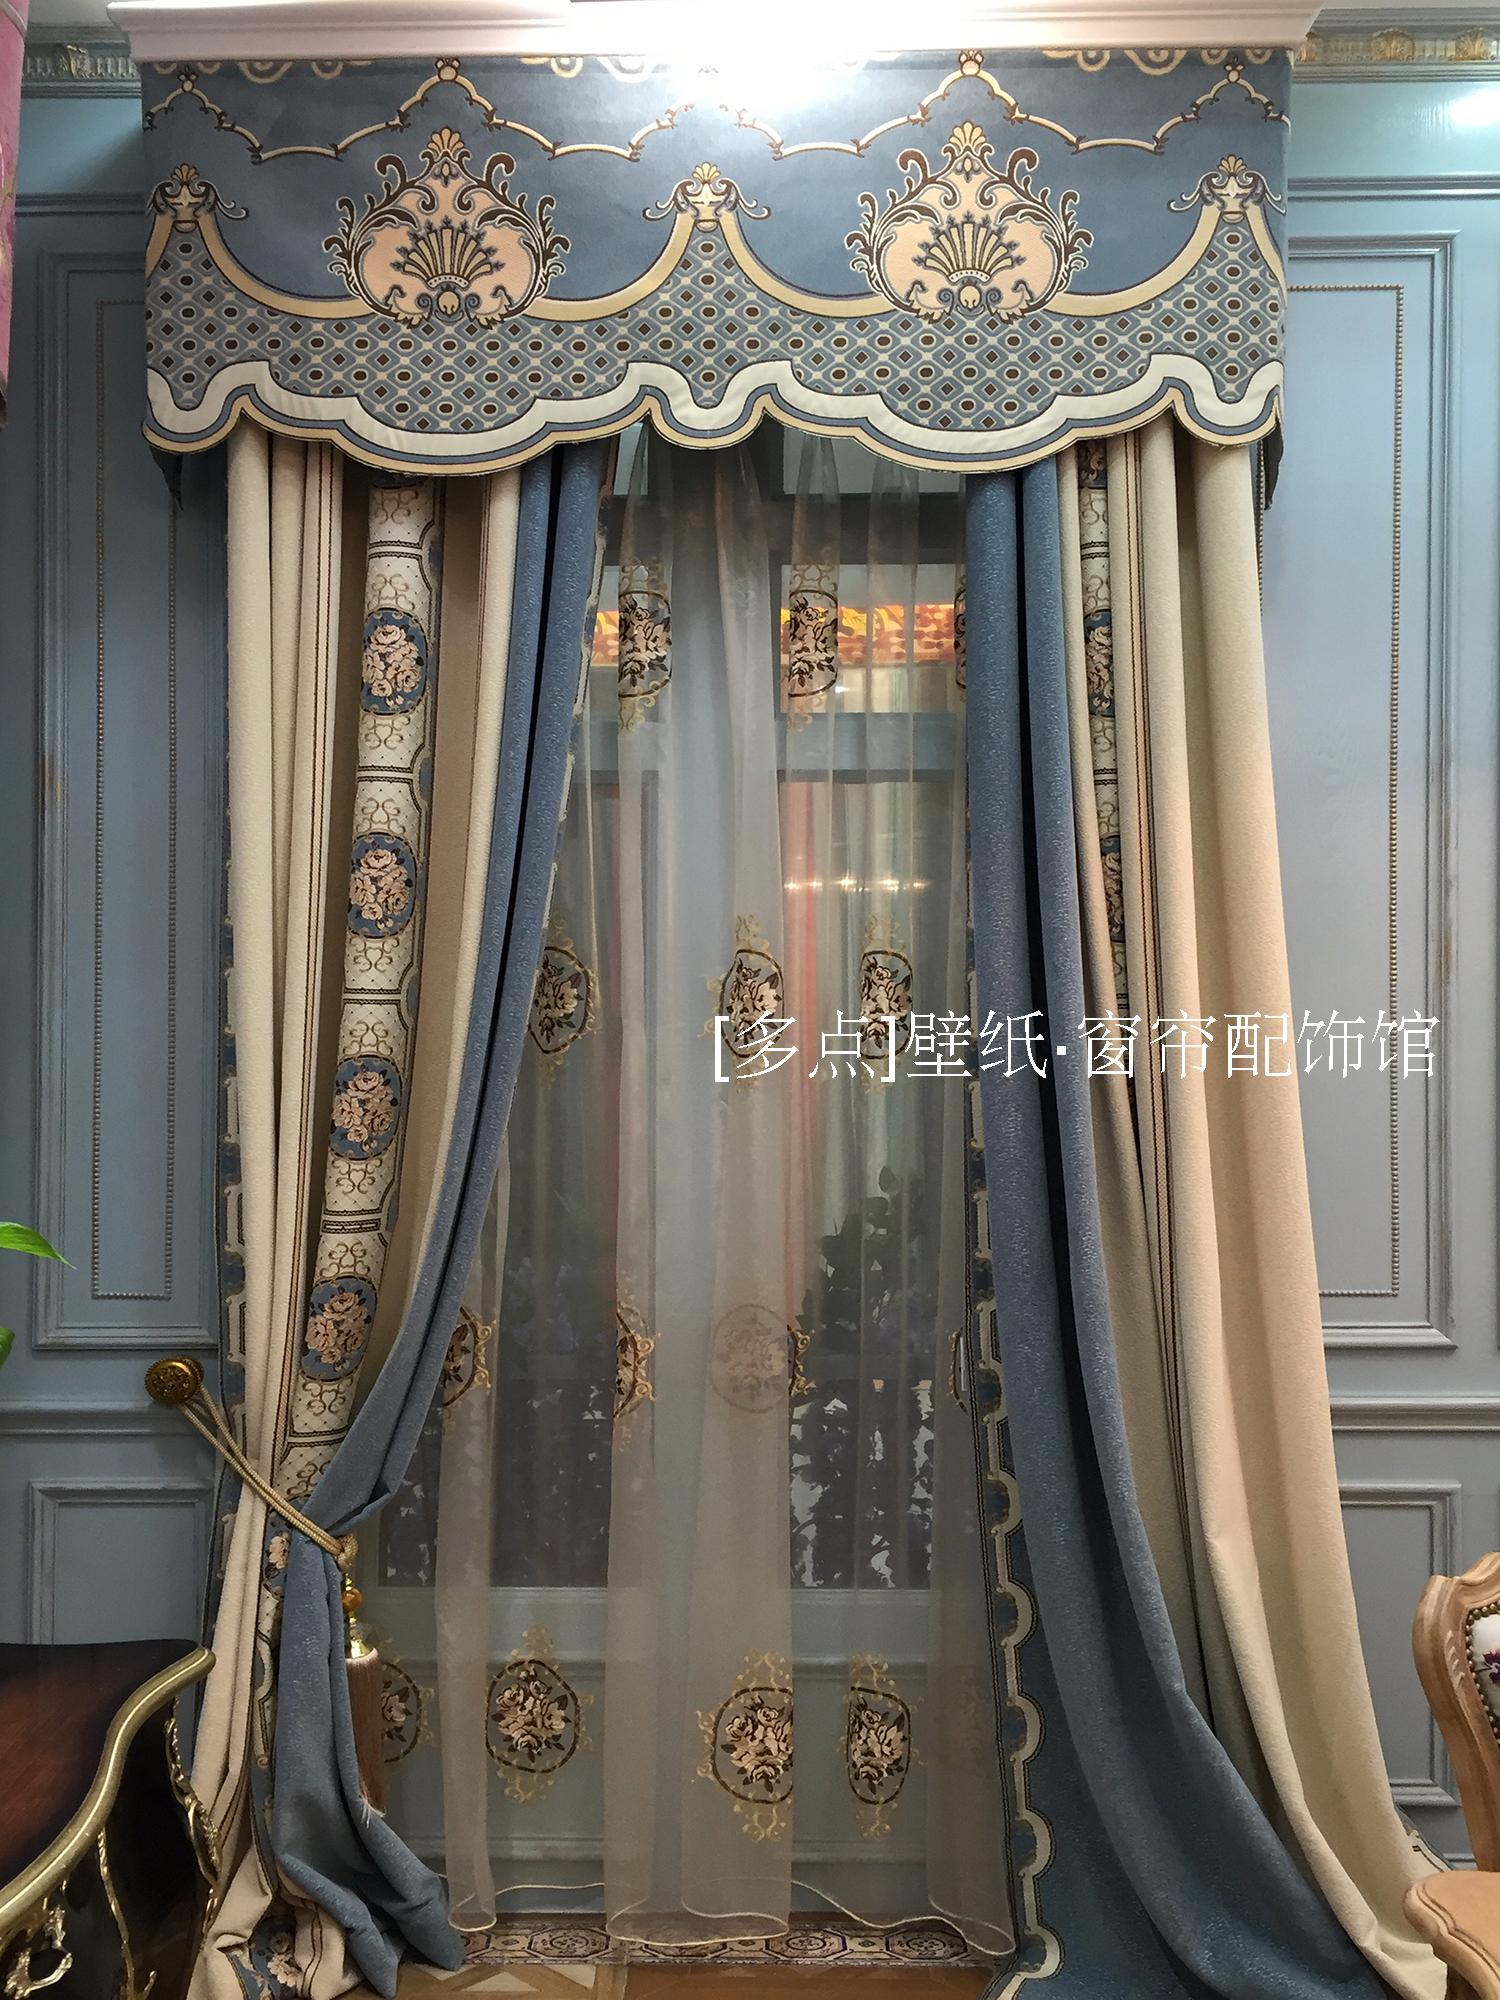 Usd shenyang multi point wallpaper curtains - European style curtains for living room ...